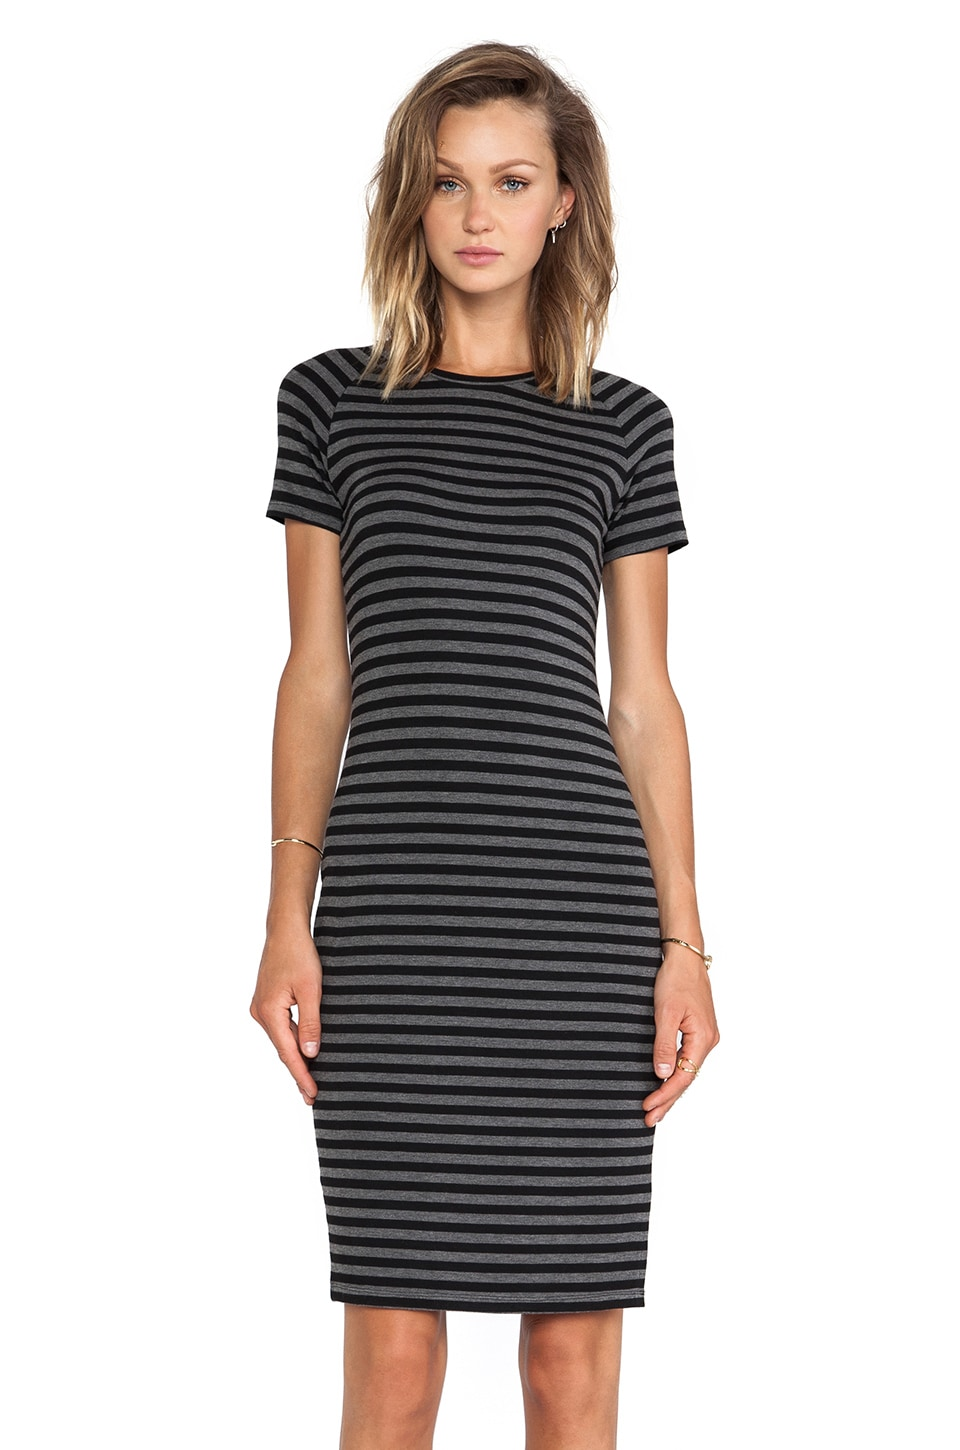 Lovers + Friends Molly Dress in Stripe